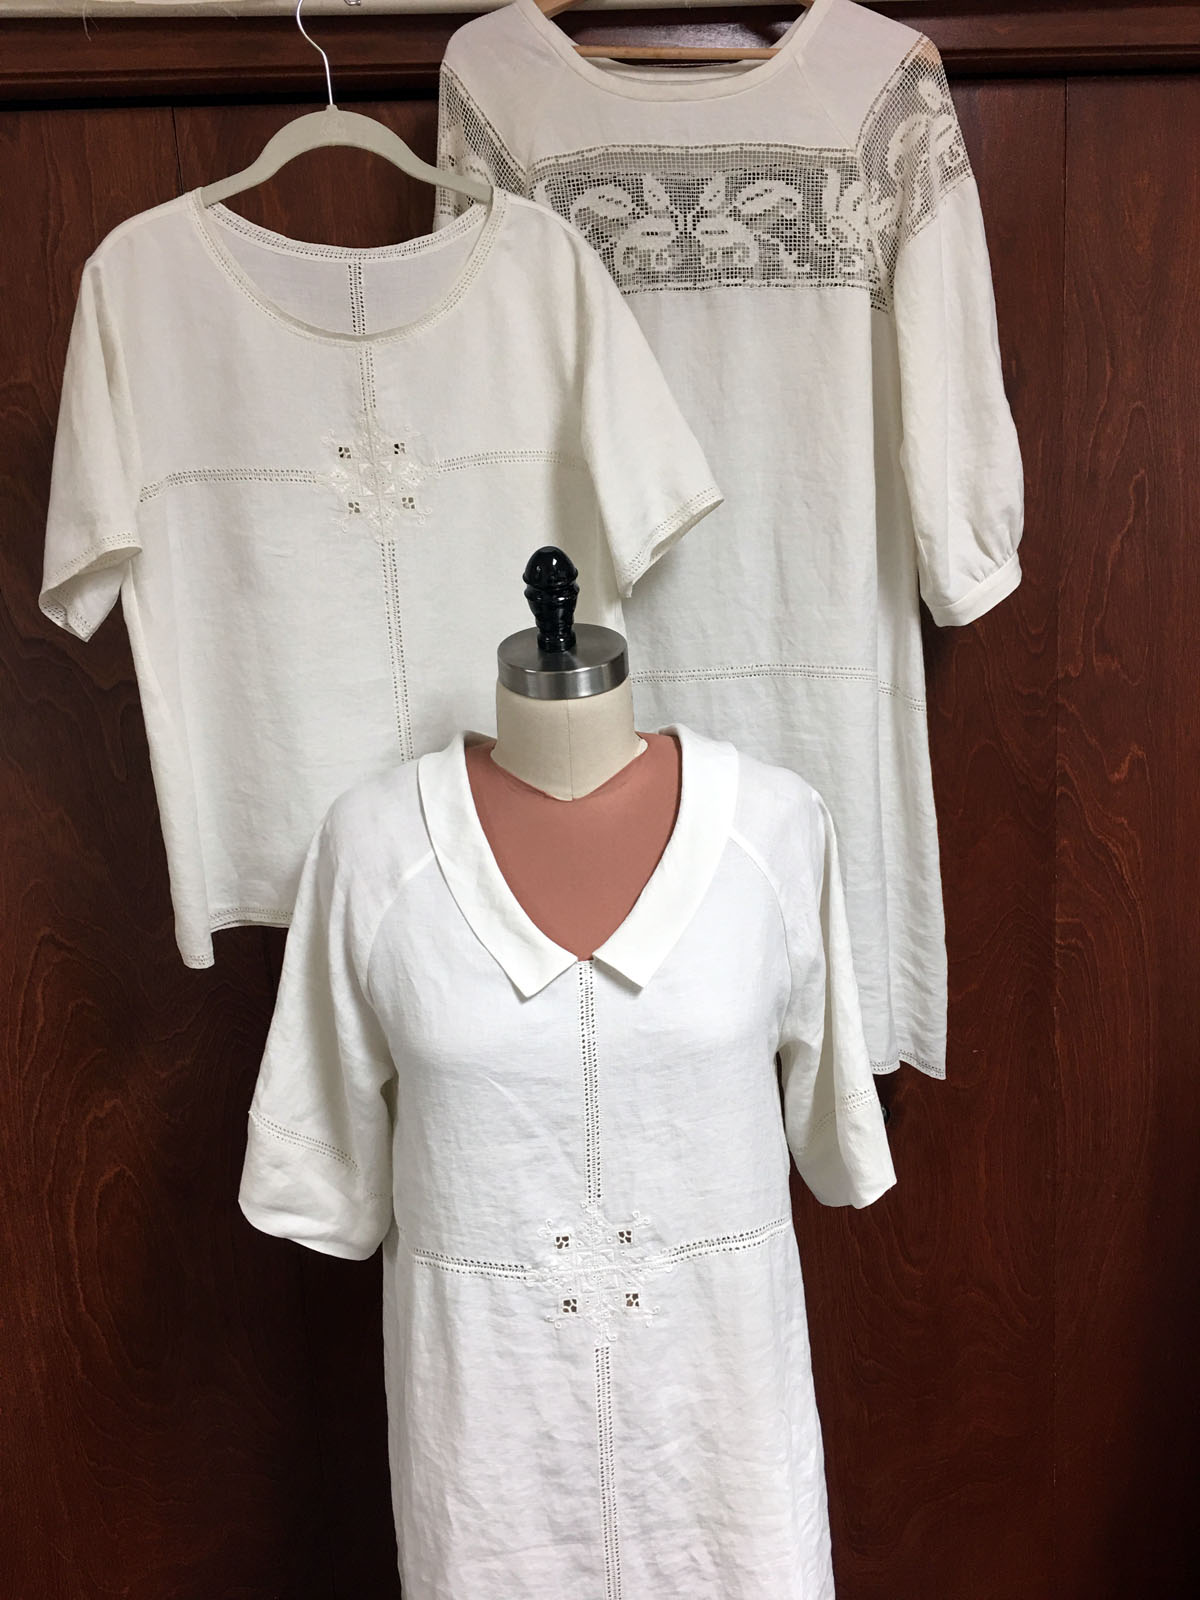 Sewing self-care: Becky Fulgoni made three garments made from an Italian linen tablecloth